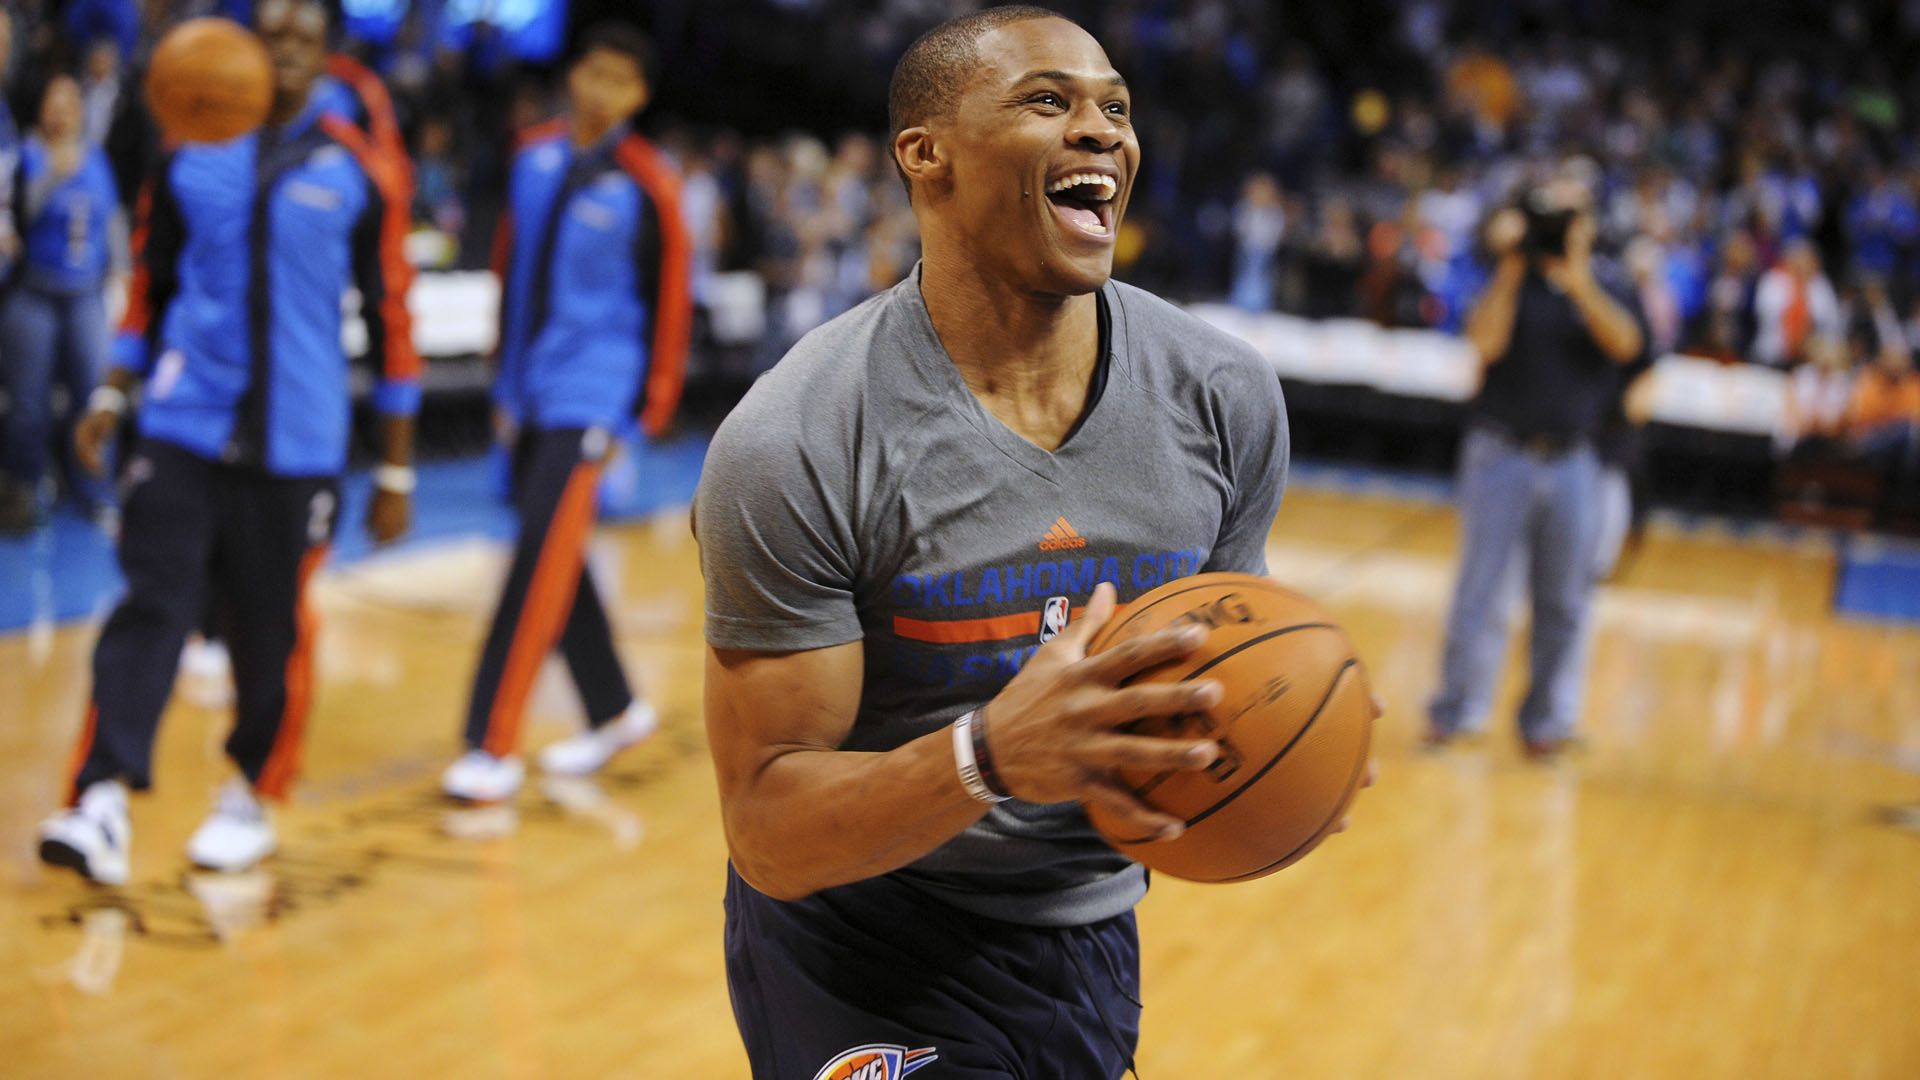 russell westbrook laughing hd wallpaper 63574